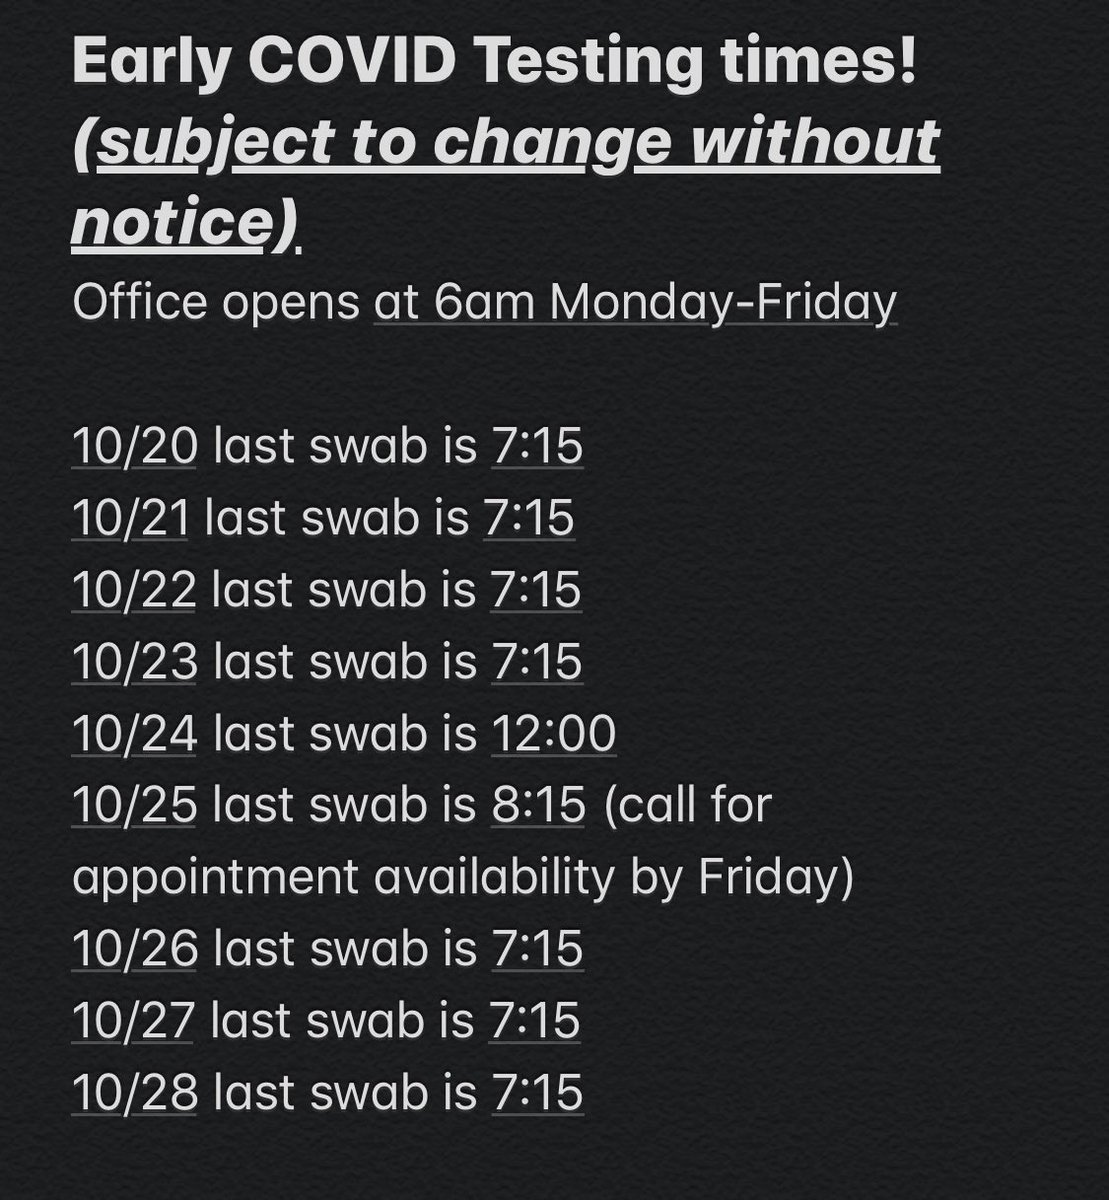 💥LA early COVID testing time💥       Anyone tested after 7:15 will get results following day usually between 11am & 1pm❕Please purchase your test prior to coming in. Thank you for understanding! #themoreyouknow #iknowmystatus #TTSteamNorthridge